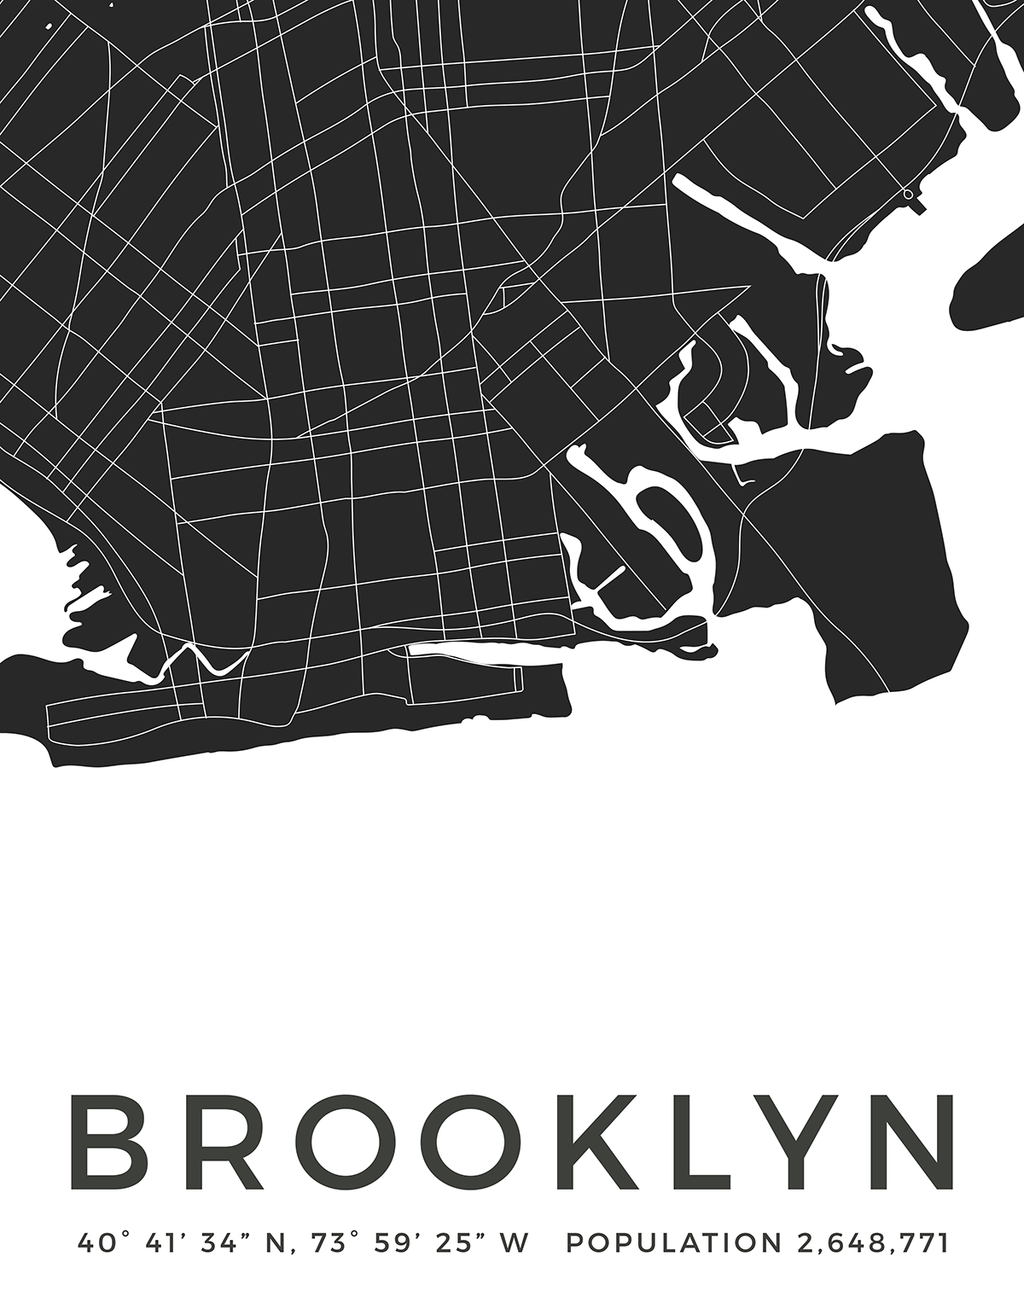 Brooklyn city map poster minimalistic